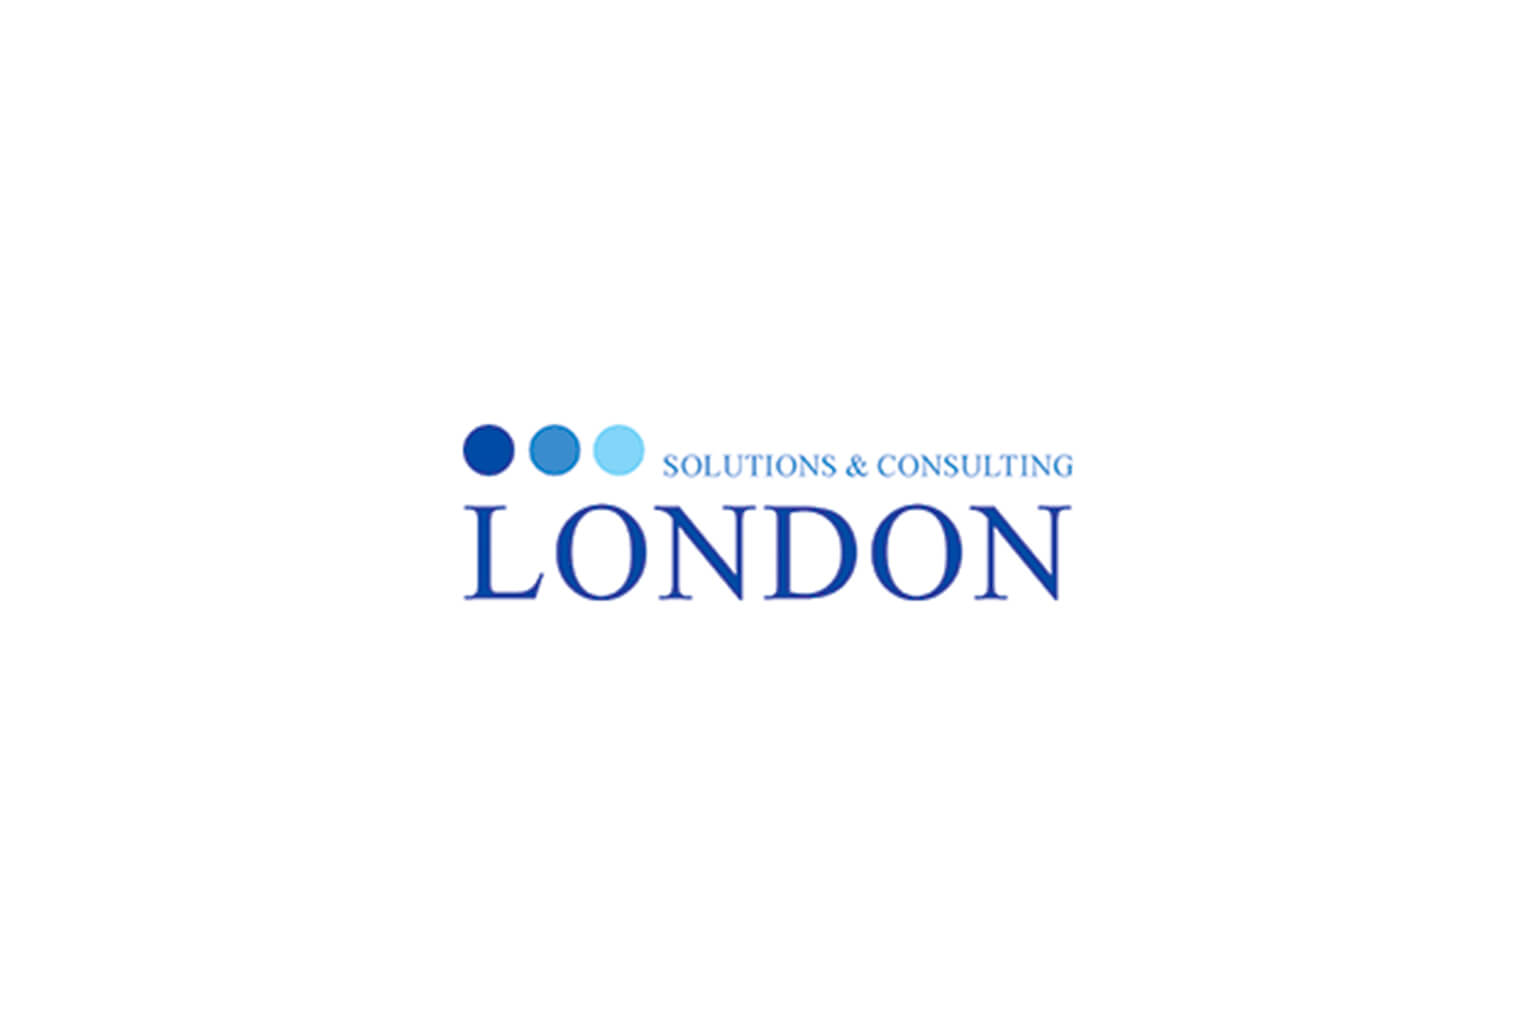 London Solutions & Consulting Srl